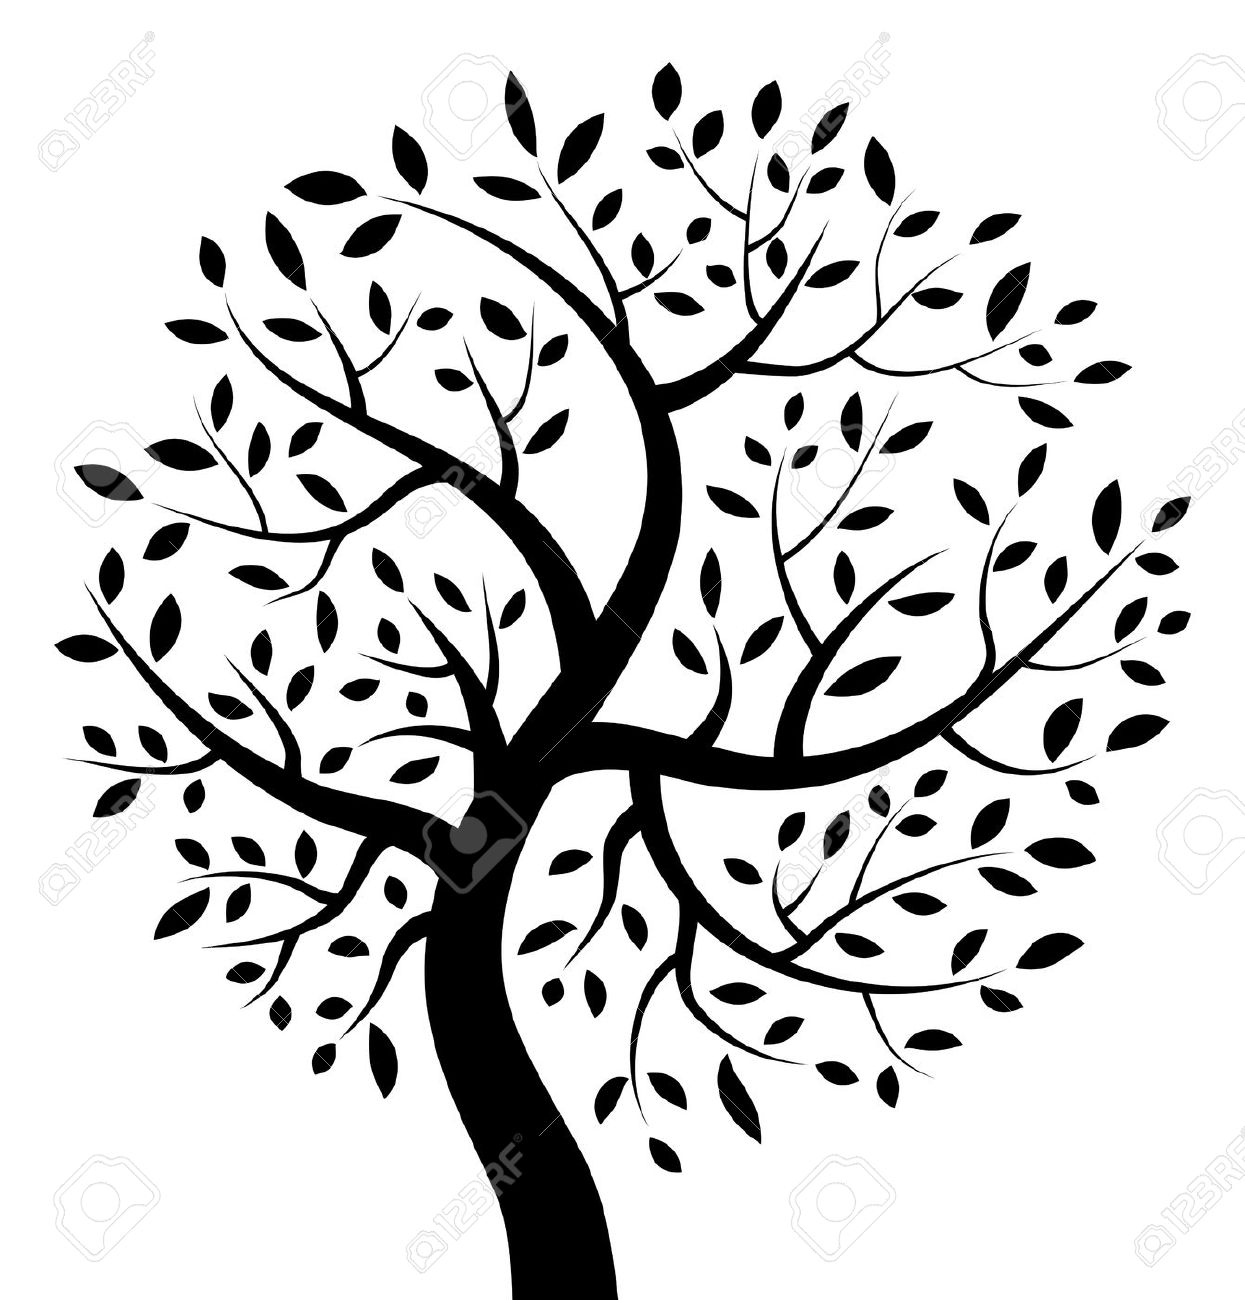 Life clipart. Black and white tree